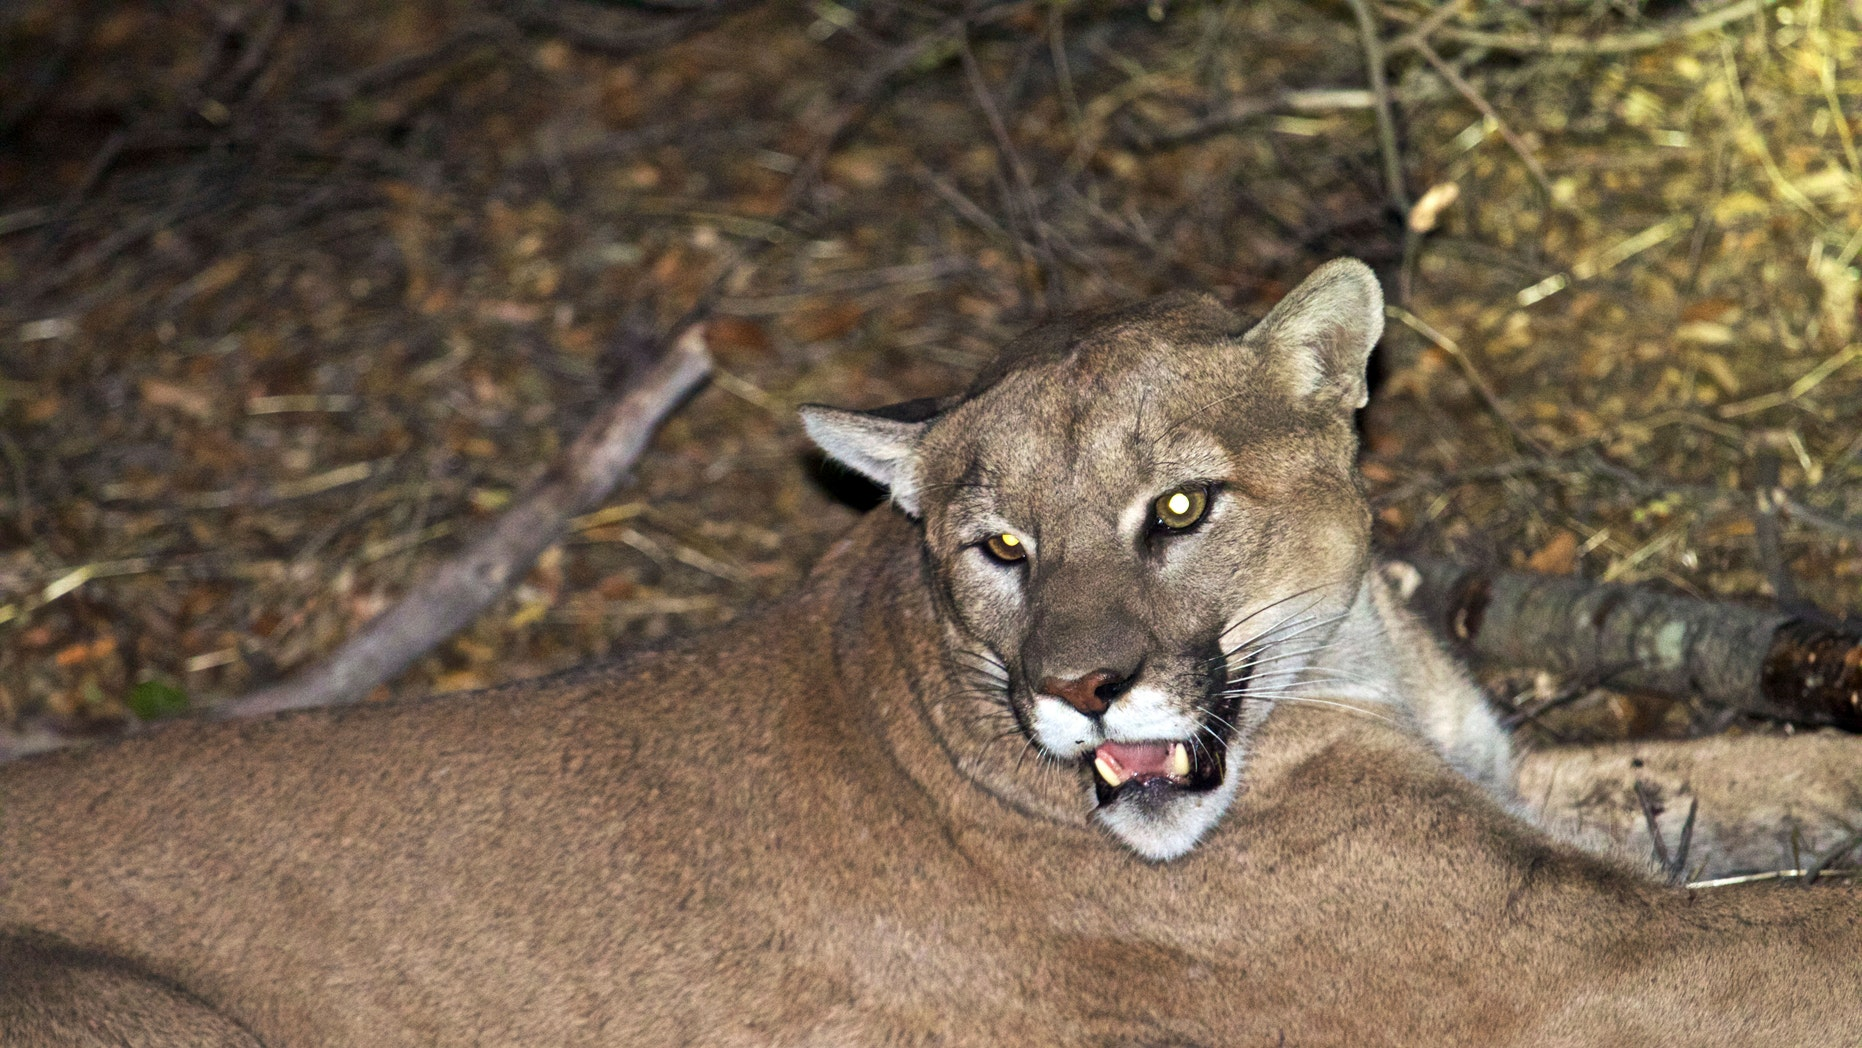 The mountain lion known as P-45 is pictured in Malibu, California.